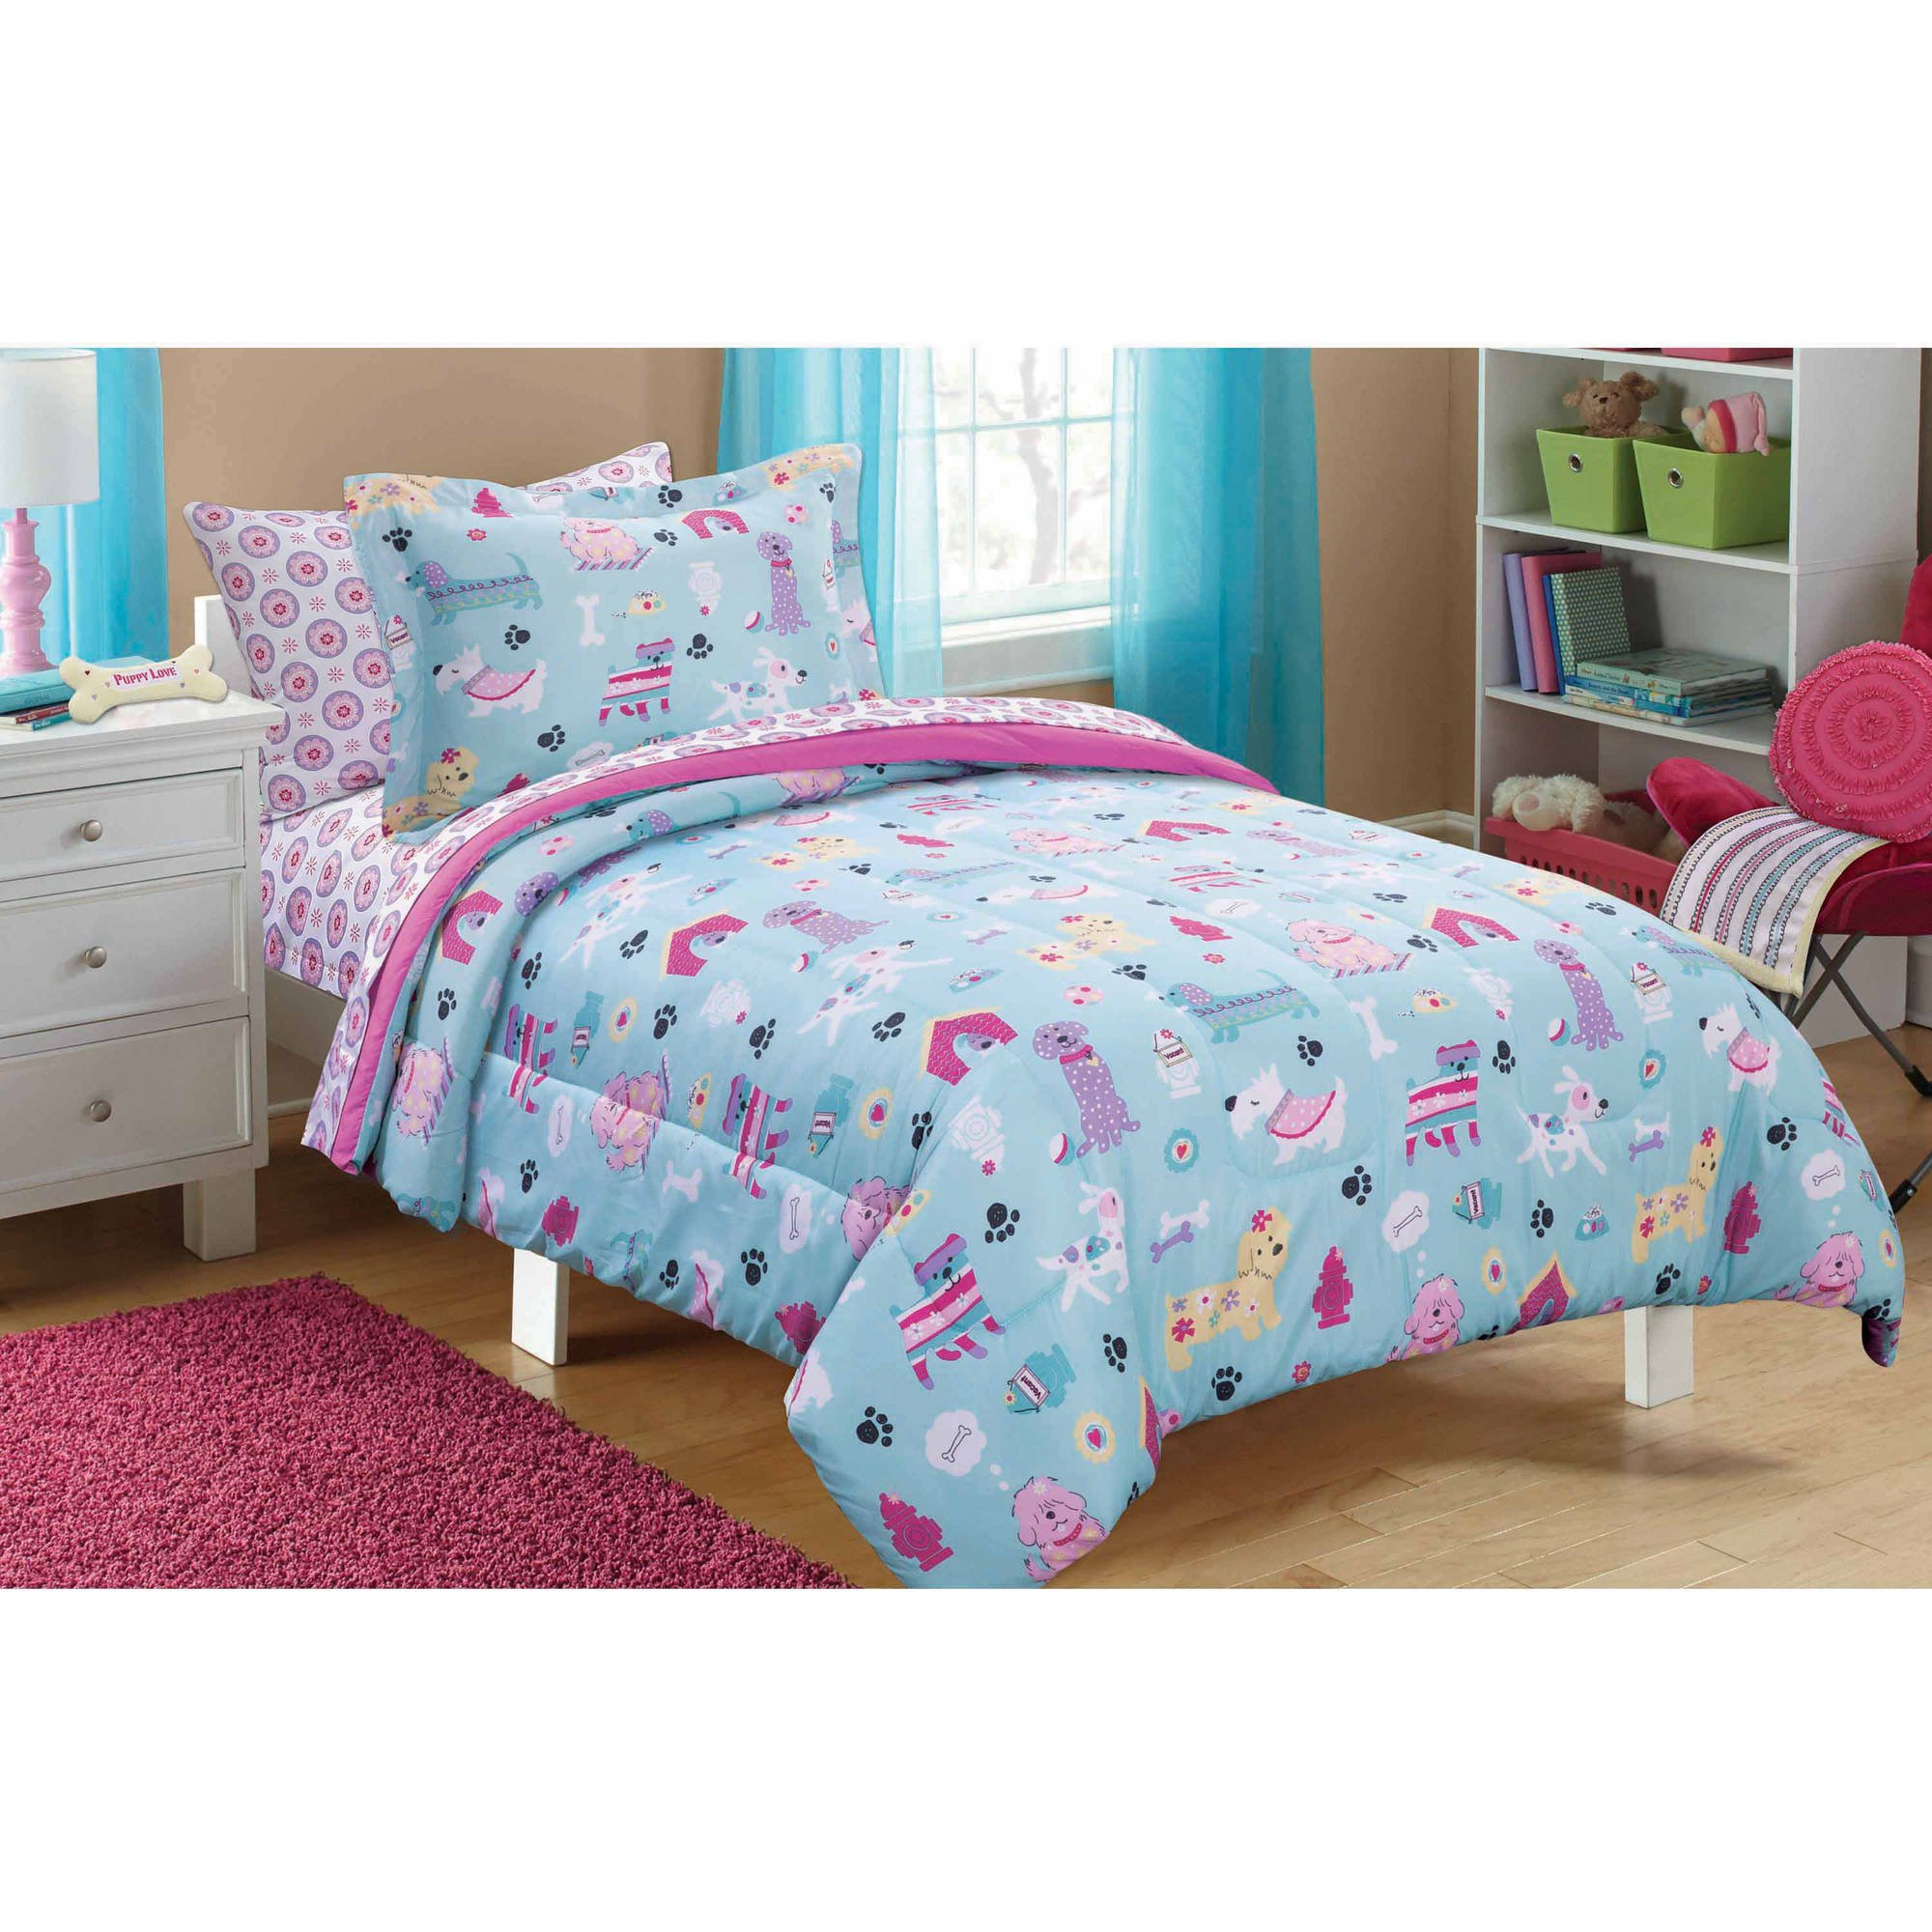 Mainstays Kids Puppy Love Whimsical Flower pattern Reversible Solid Pink Full Bedding Comforter for Girls (7 Piece in a Bag)